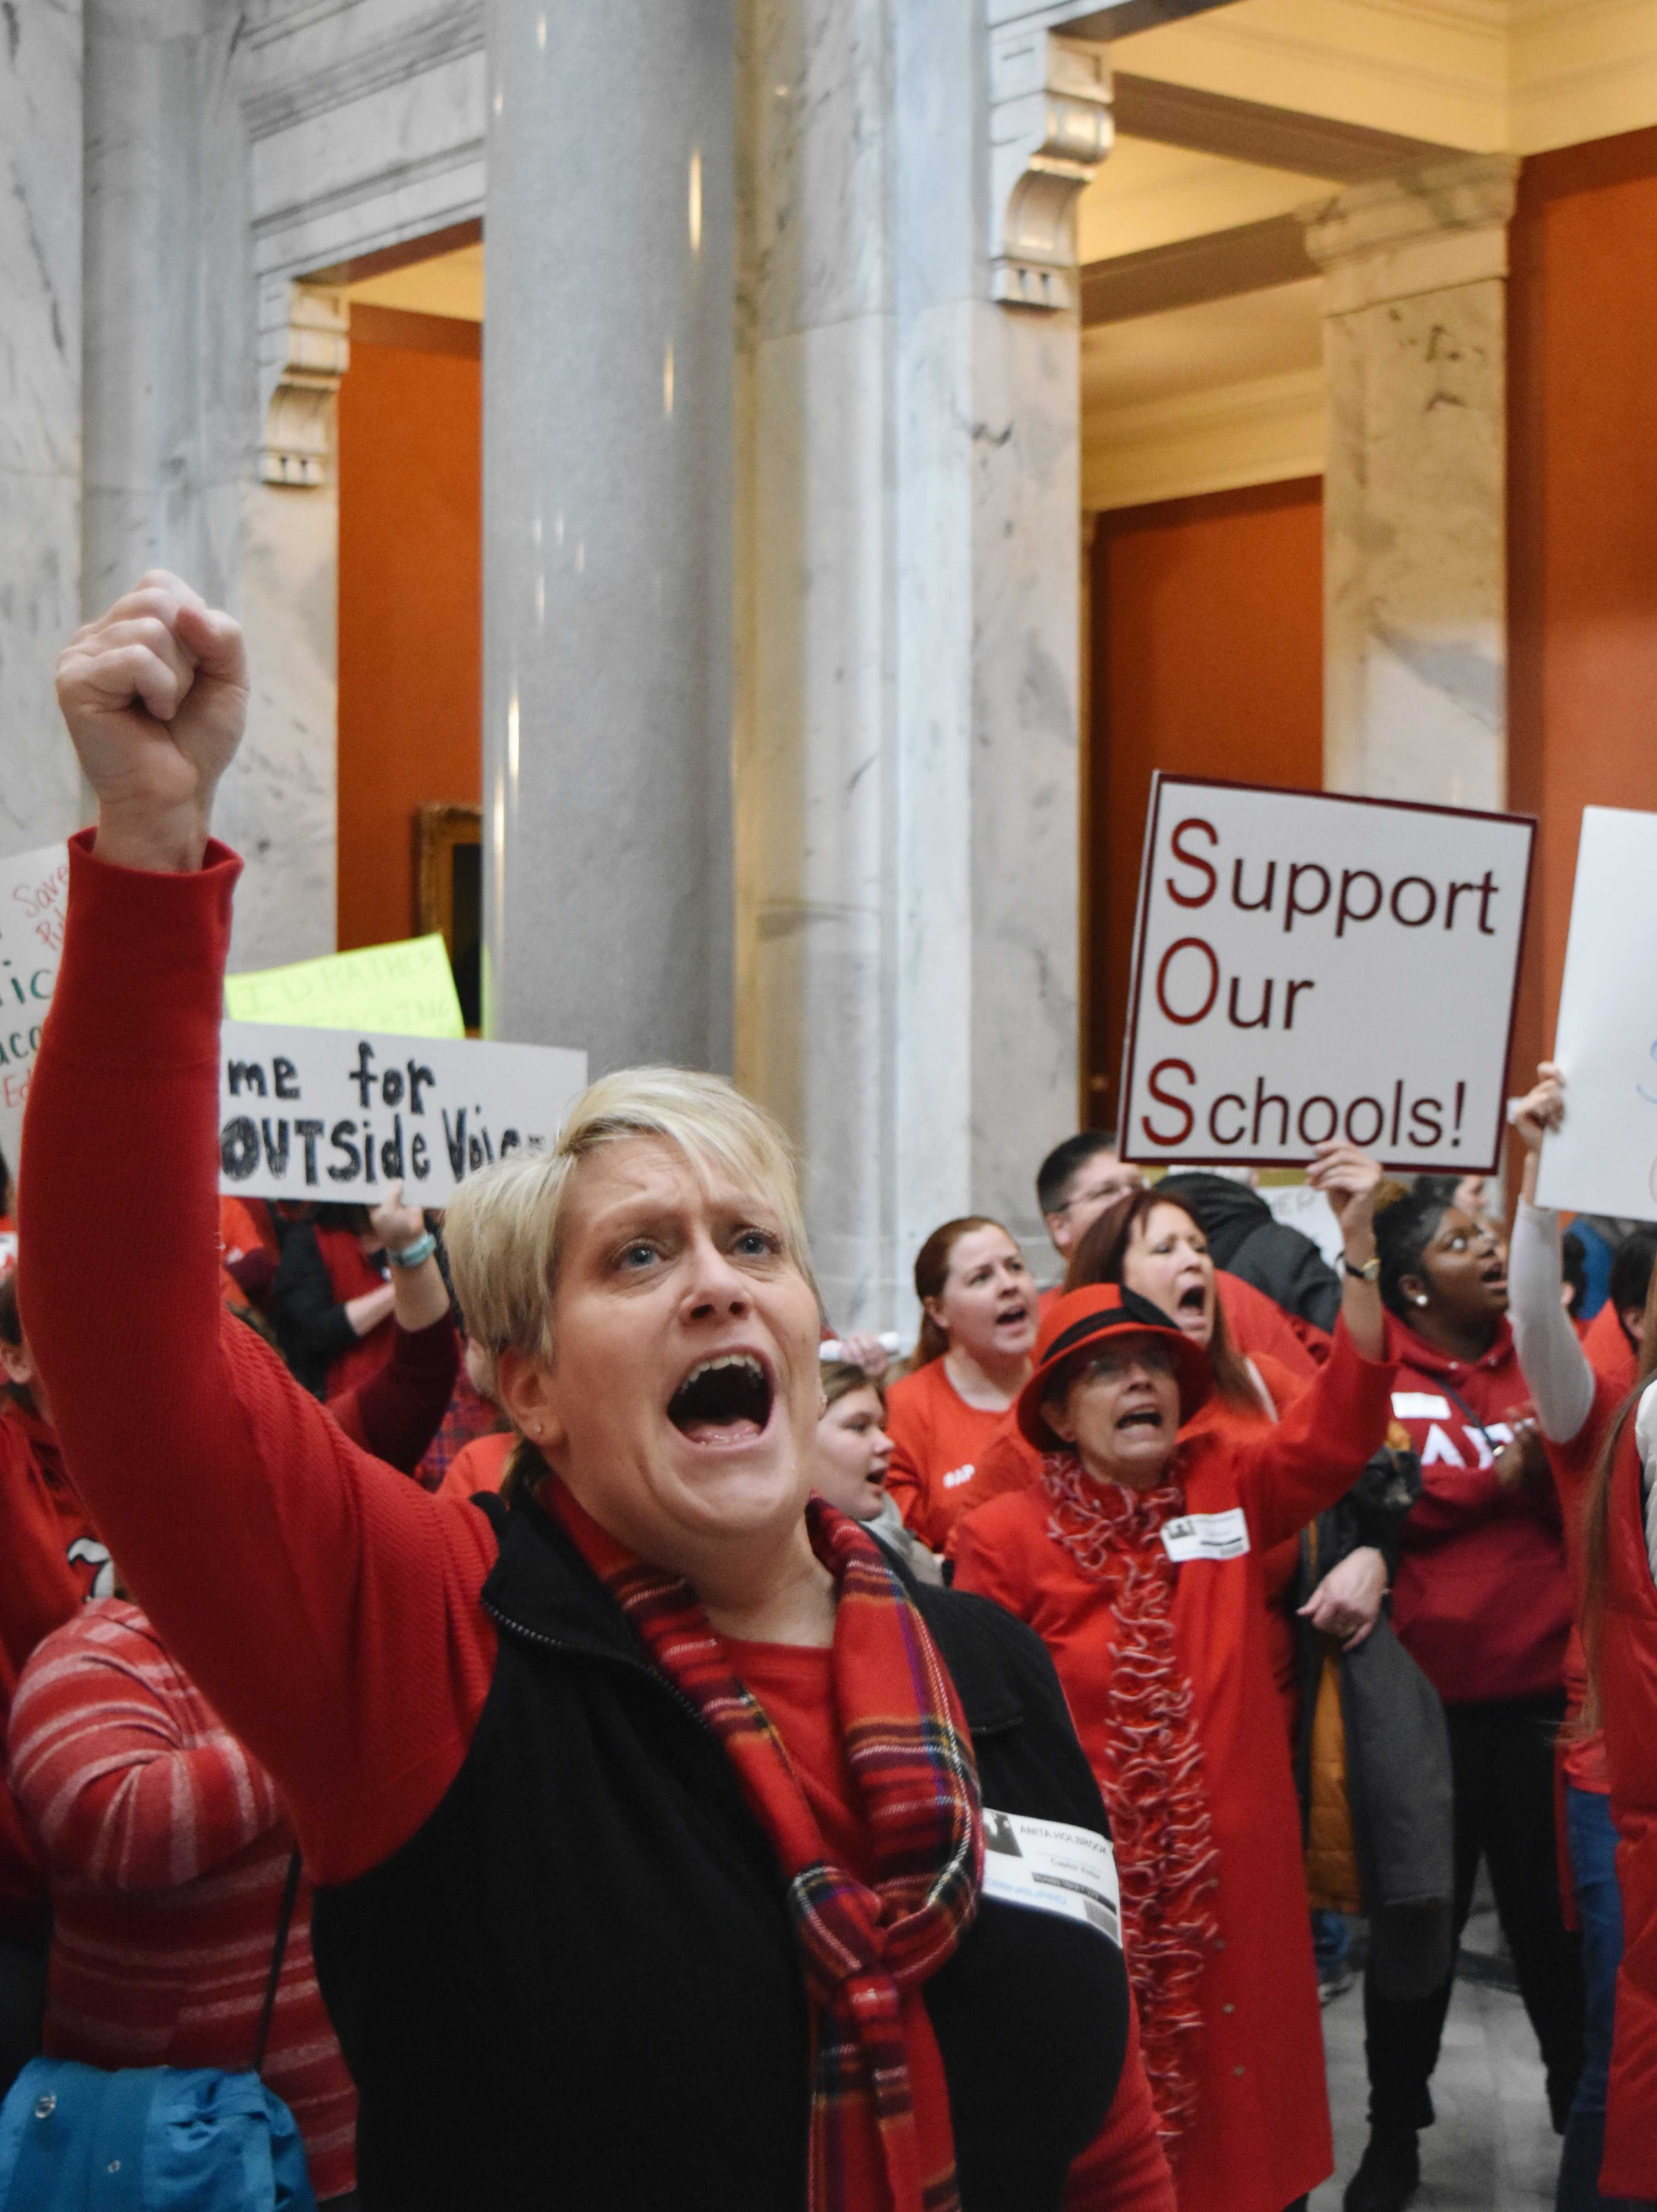 As+Democratic+legislators+walk+up+the+stairs+to+the+floor+of+the+House%2C+teachers+chant+as+loud+as+they+can+and+thank+them+for+their+support.+Photo+by+Piper+Hansen.